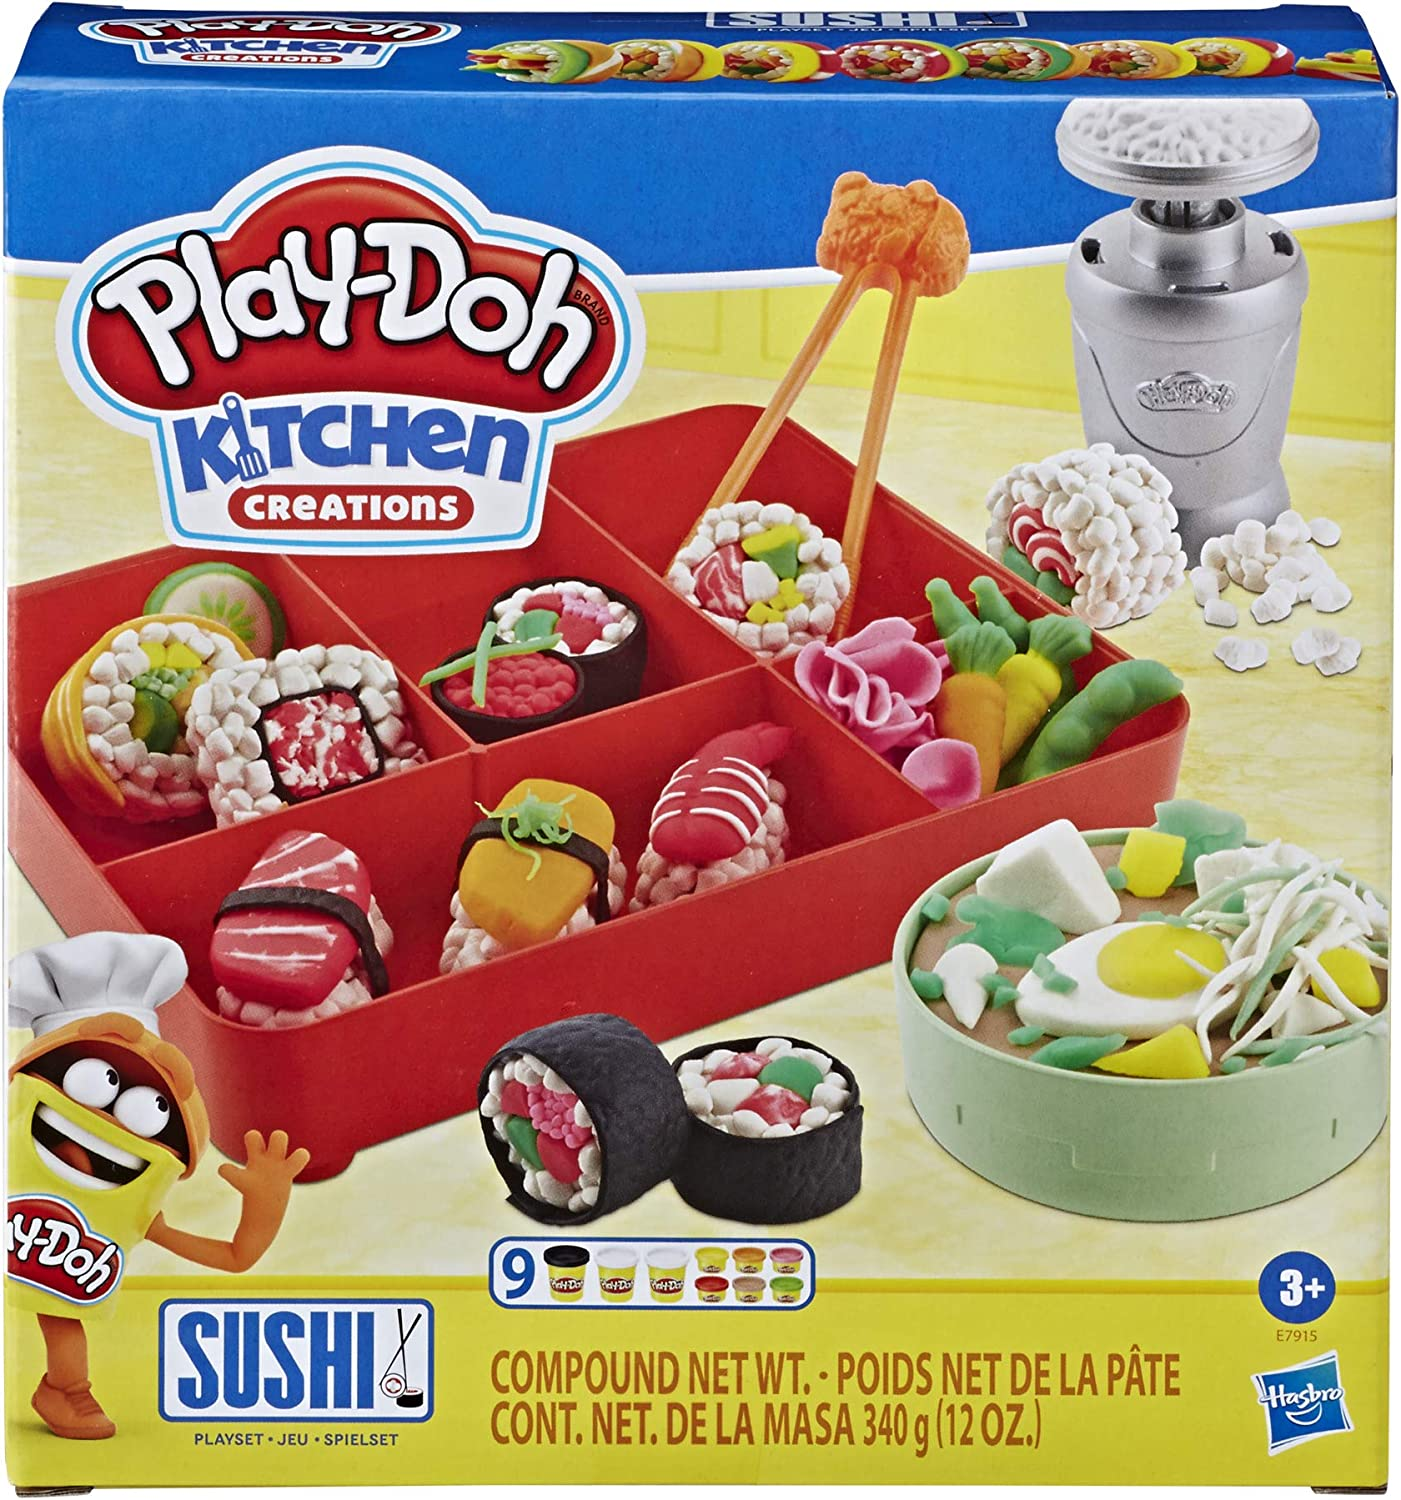 Play-Doh Kitchen Creations Sushi Play Food Set for Kids 3 Years and up with Bento Box and 9 Non-Toxic Play-Doh Cans